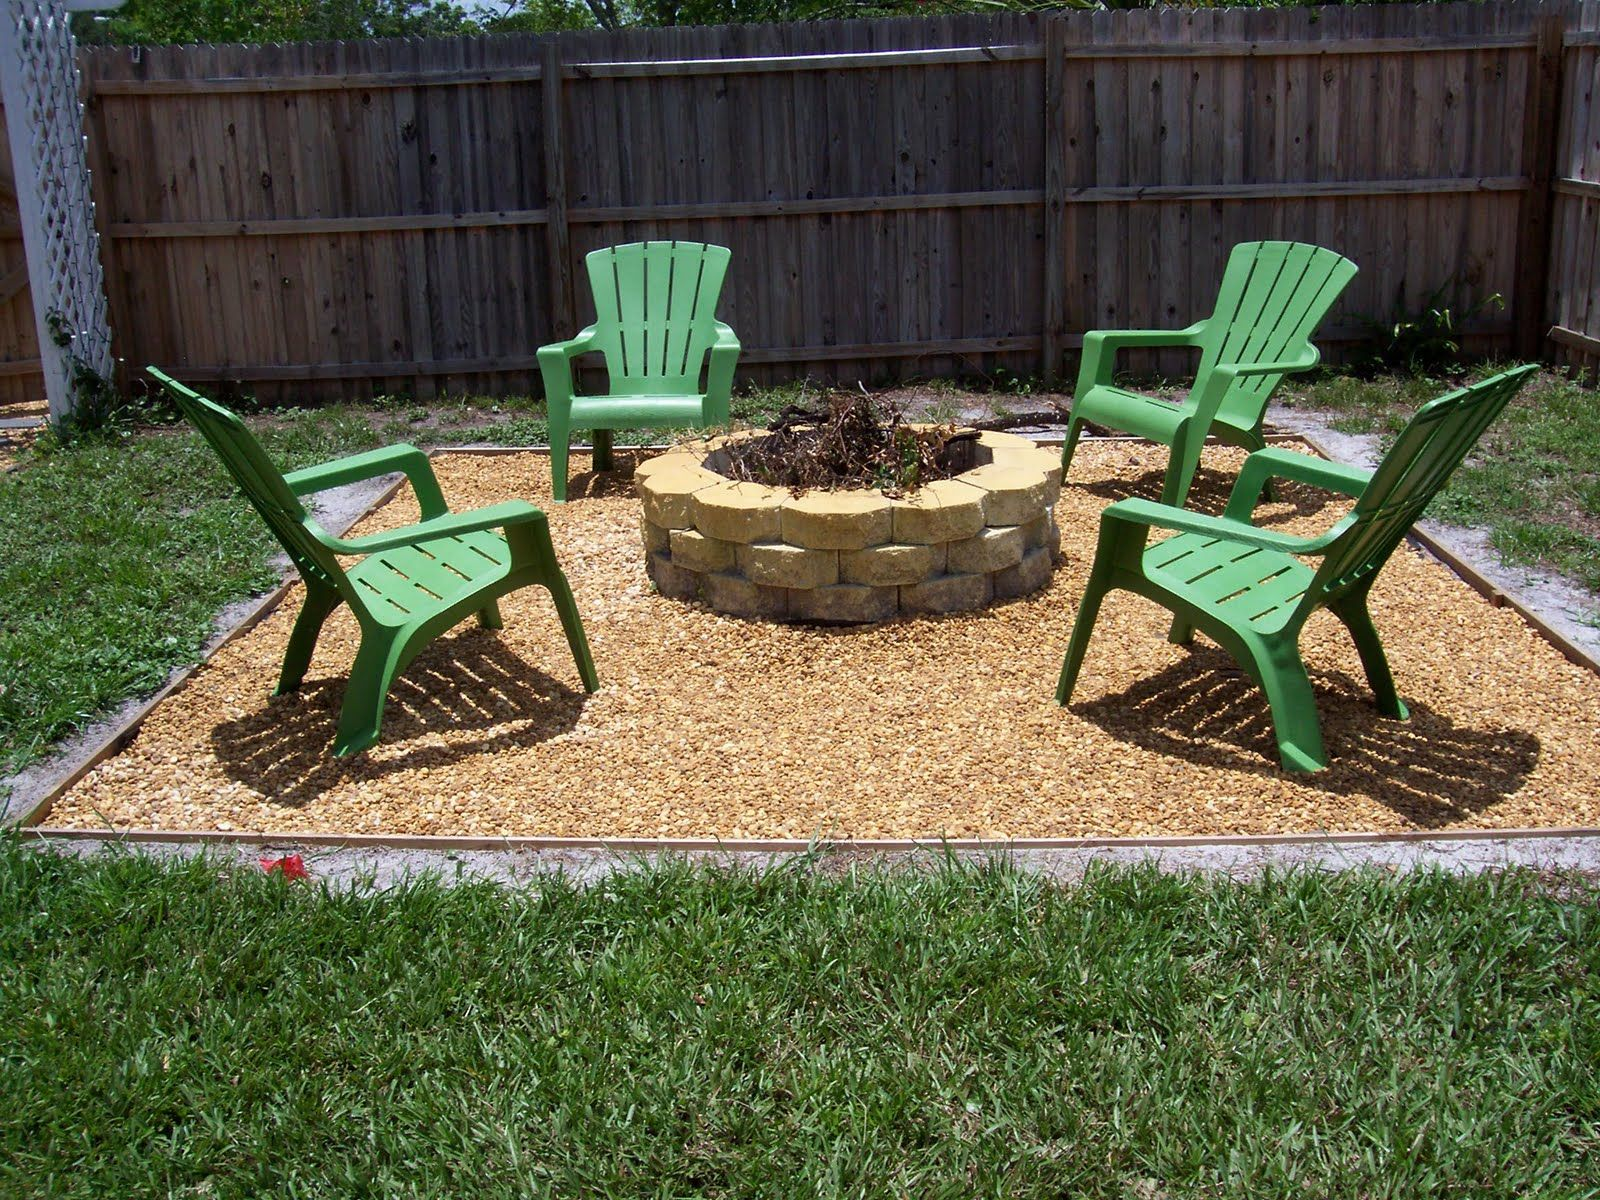 Fire Pit Design Ideas why patio fire pits are nice landscaping addition Garden Design With Fire Pits Denver Cheap And Outdoor Fire Bowls Simple Home Backyard With Backyards